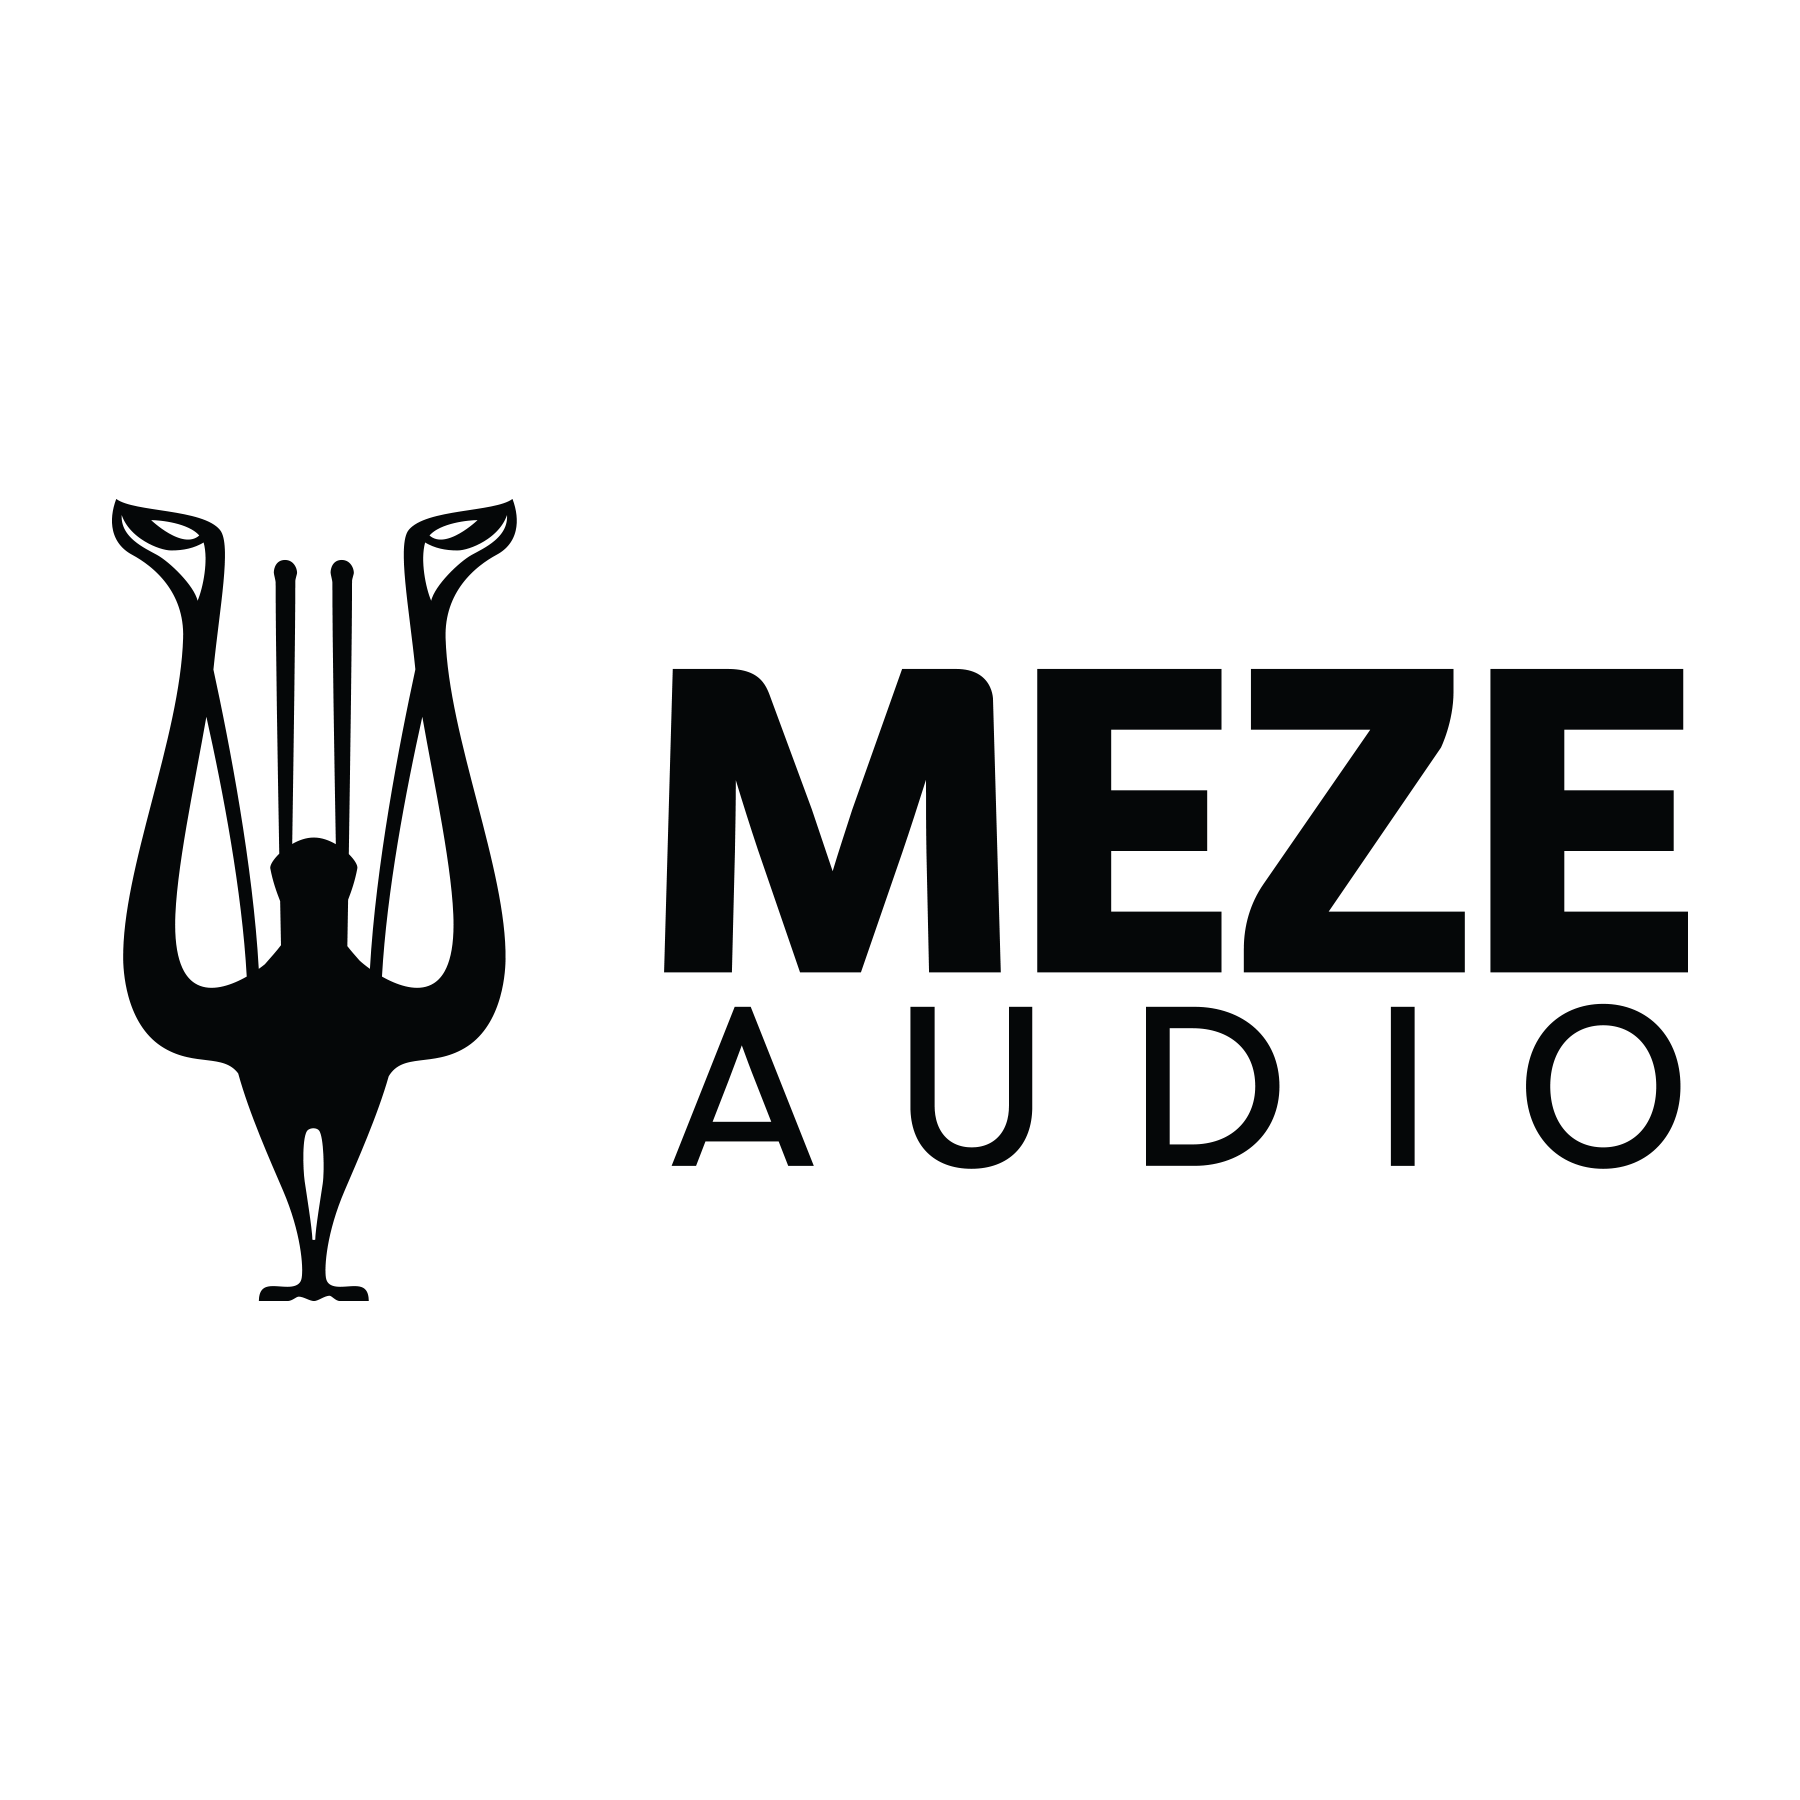 Copy of MezeAudio-logo-horizontal-1800px